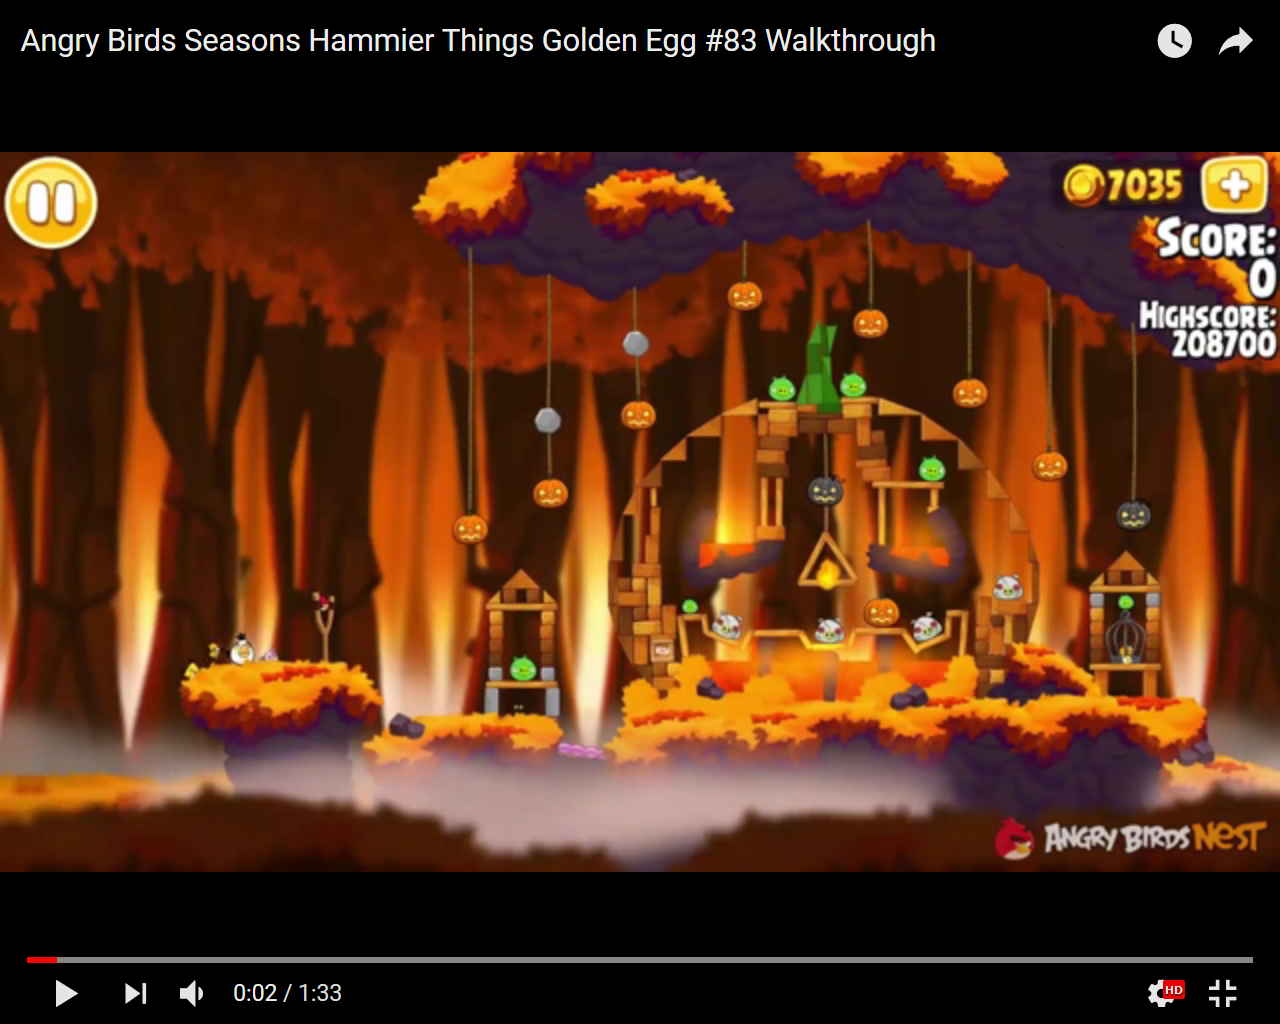 Angry Birds Hammier Things android - angry birds seasons - hammier things - 3 stars